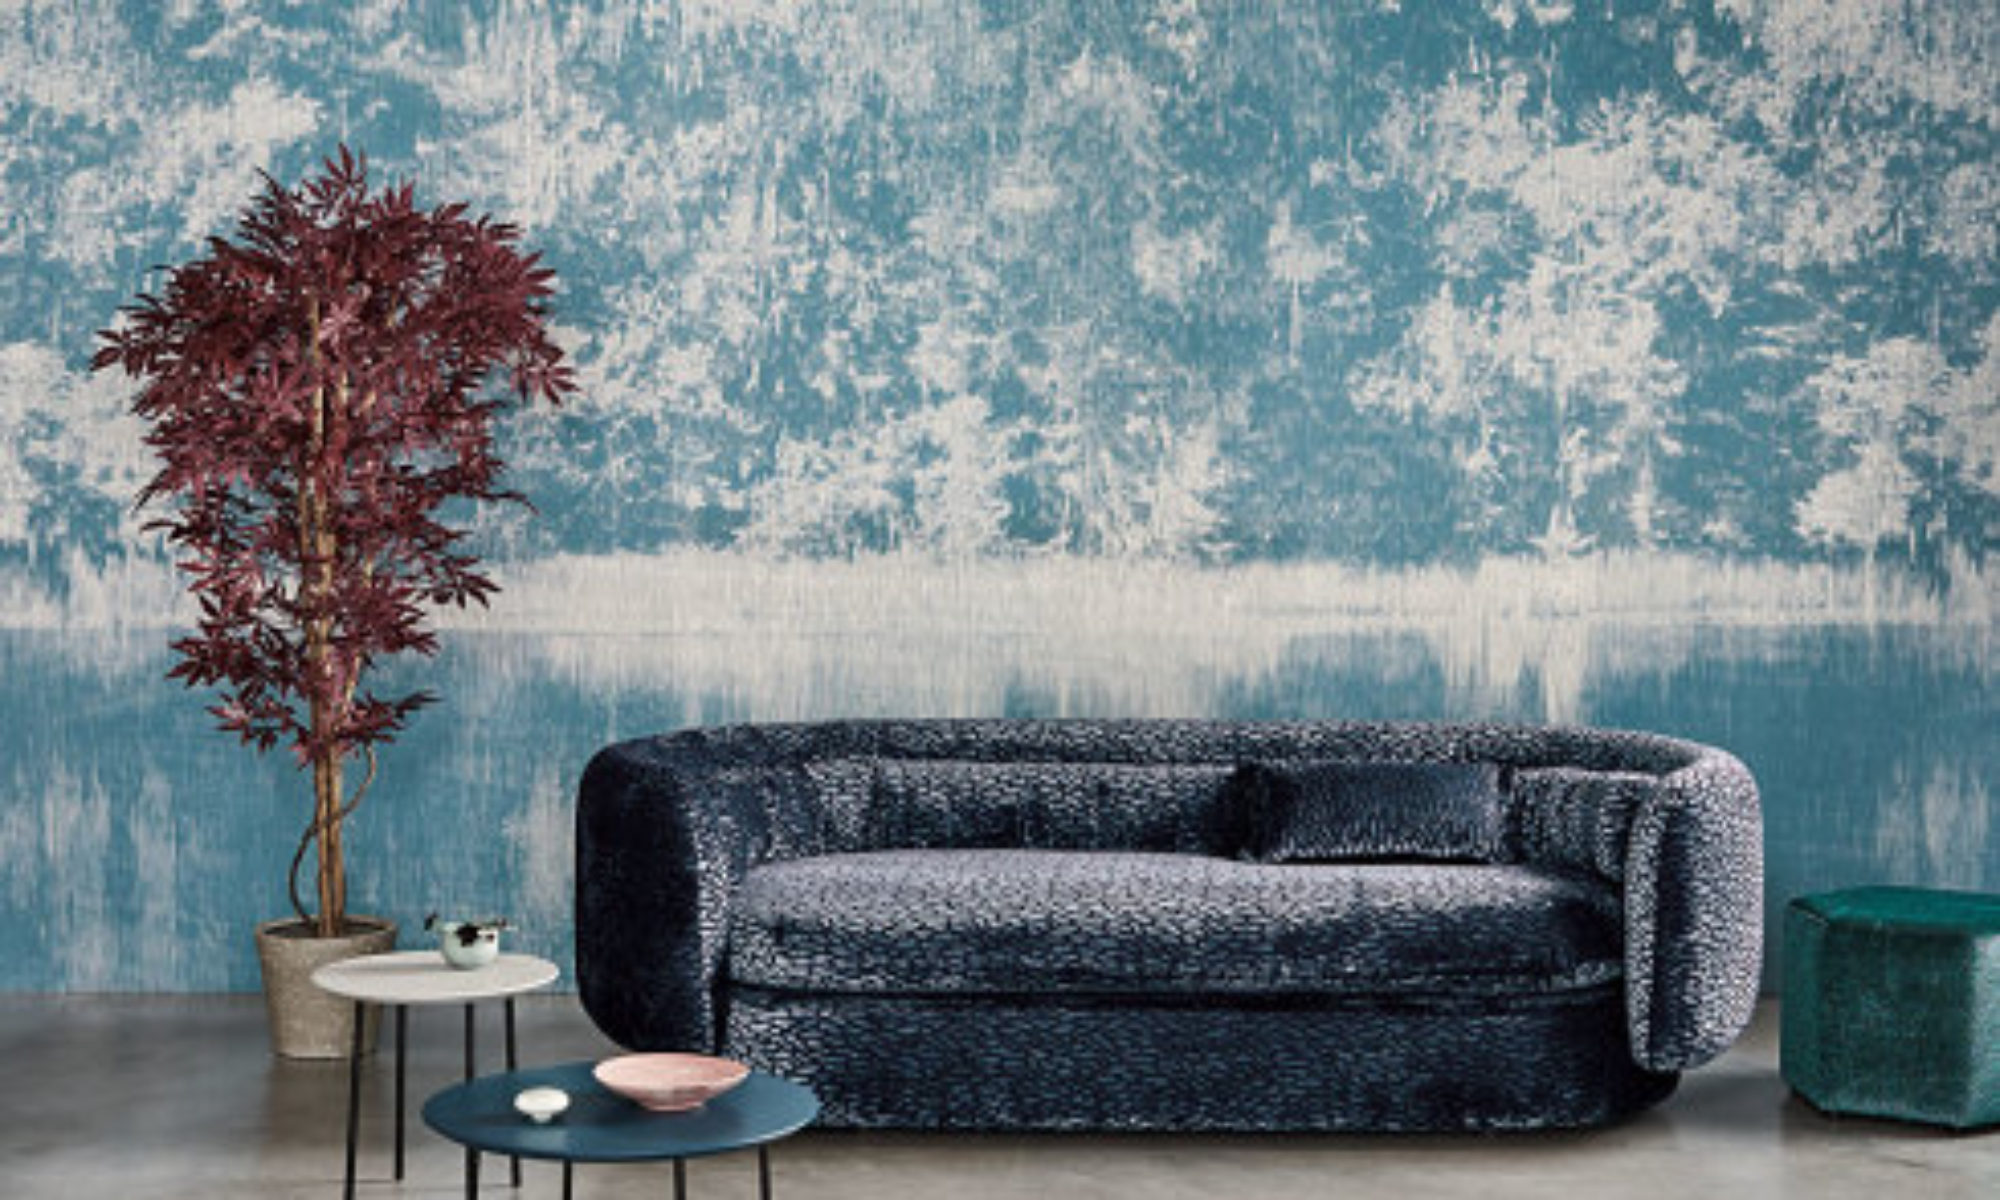 Interieur Passion Home Textiles interieur interiors gent welcome home - moa-interiors